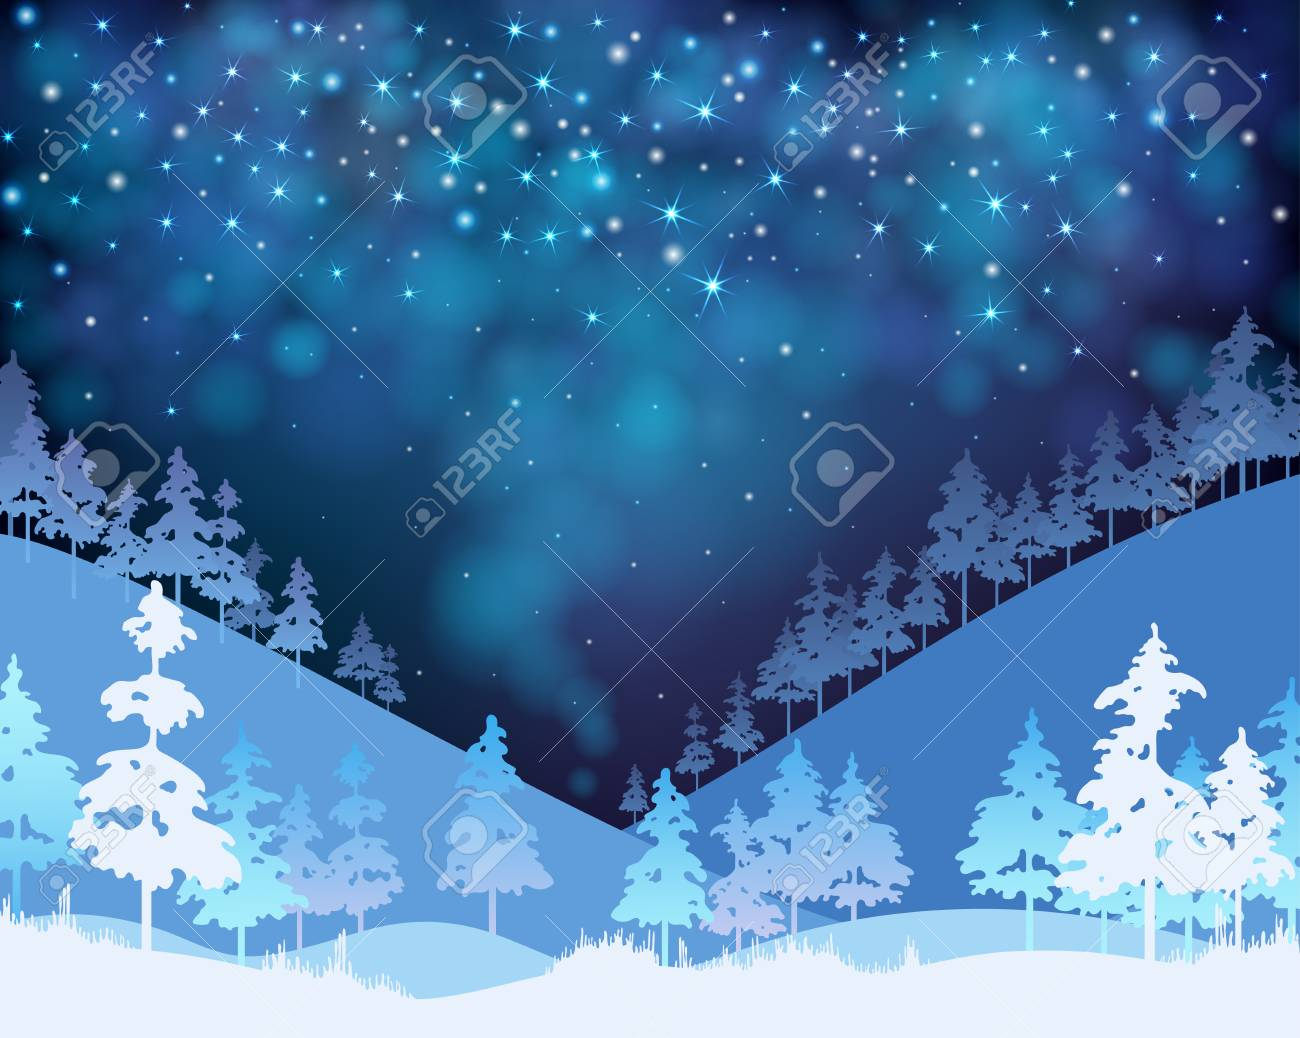 Christmas and New Year blue shiny poster with winter landscape. Vector background. - 127702042